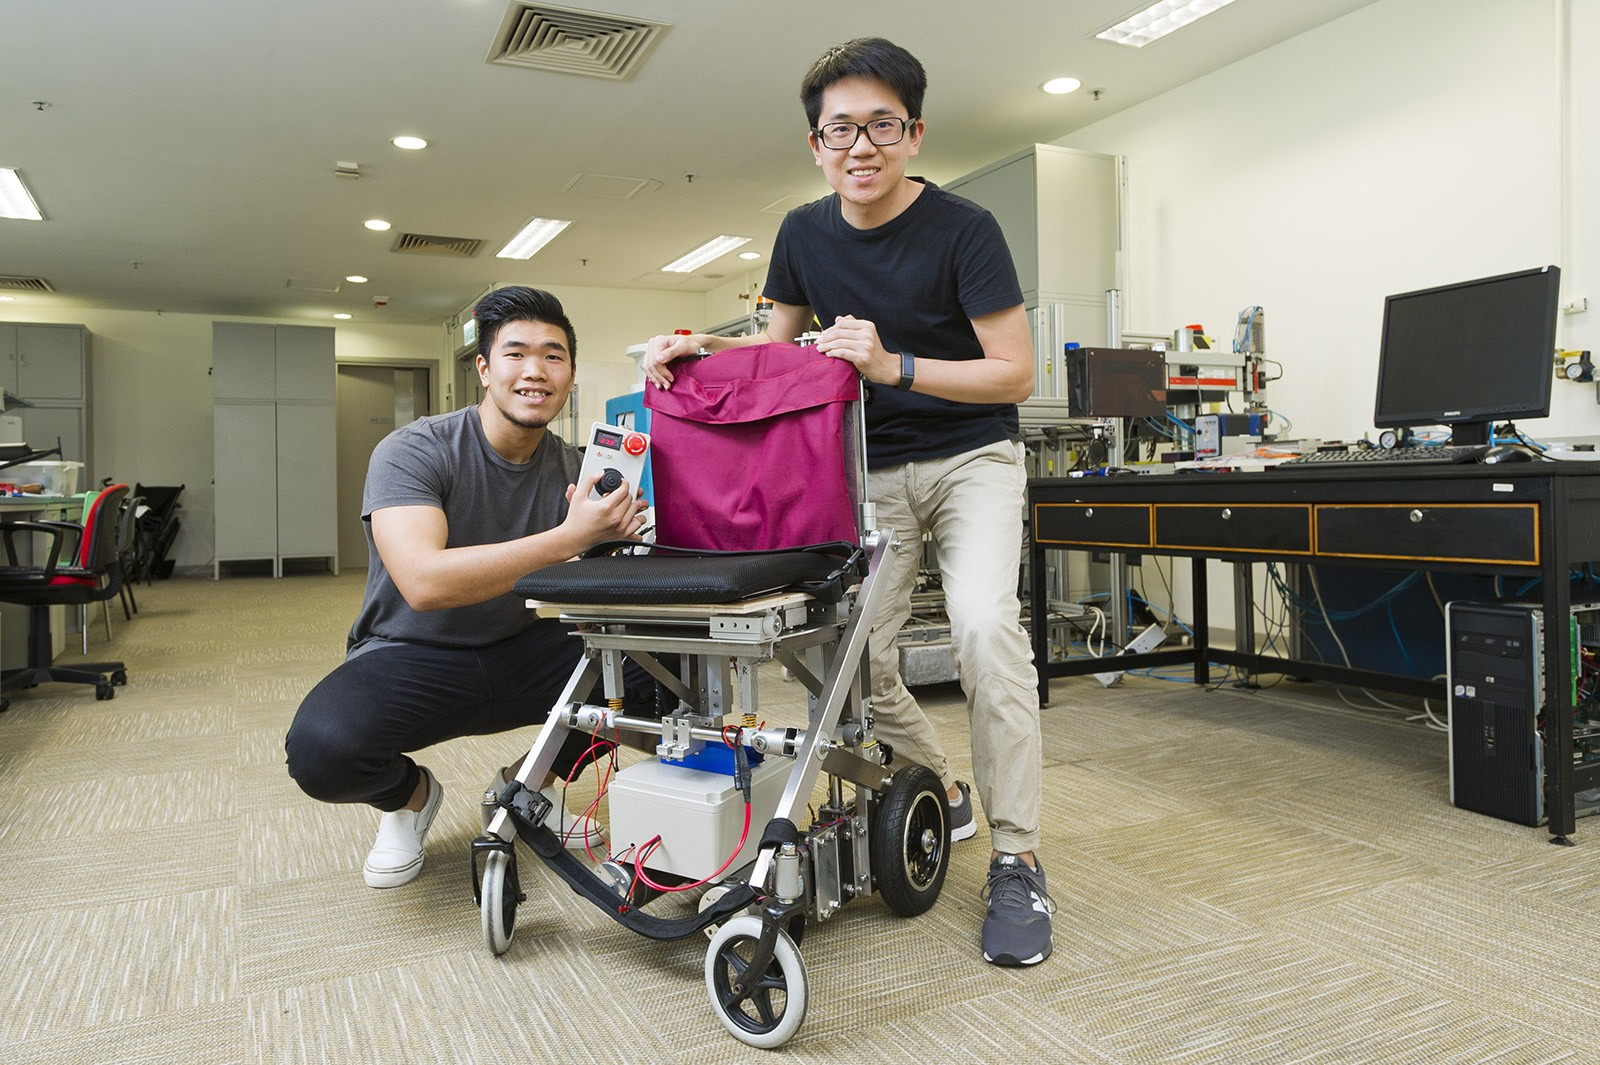 Transformable wheelchair developed by Chan Tsz-lung (left) and his teammate Lam Wah-shing.